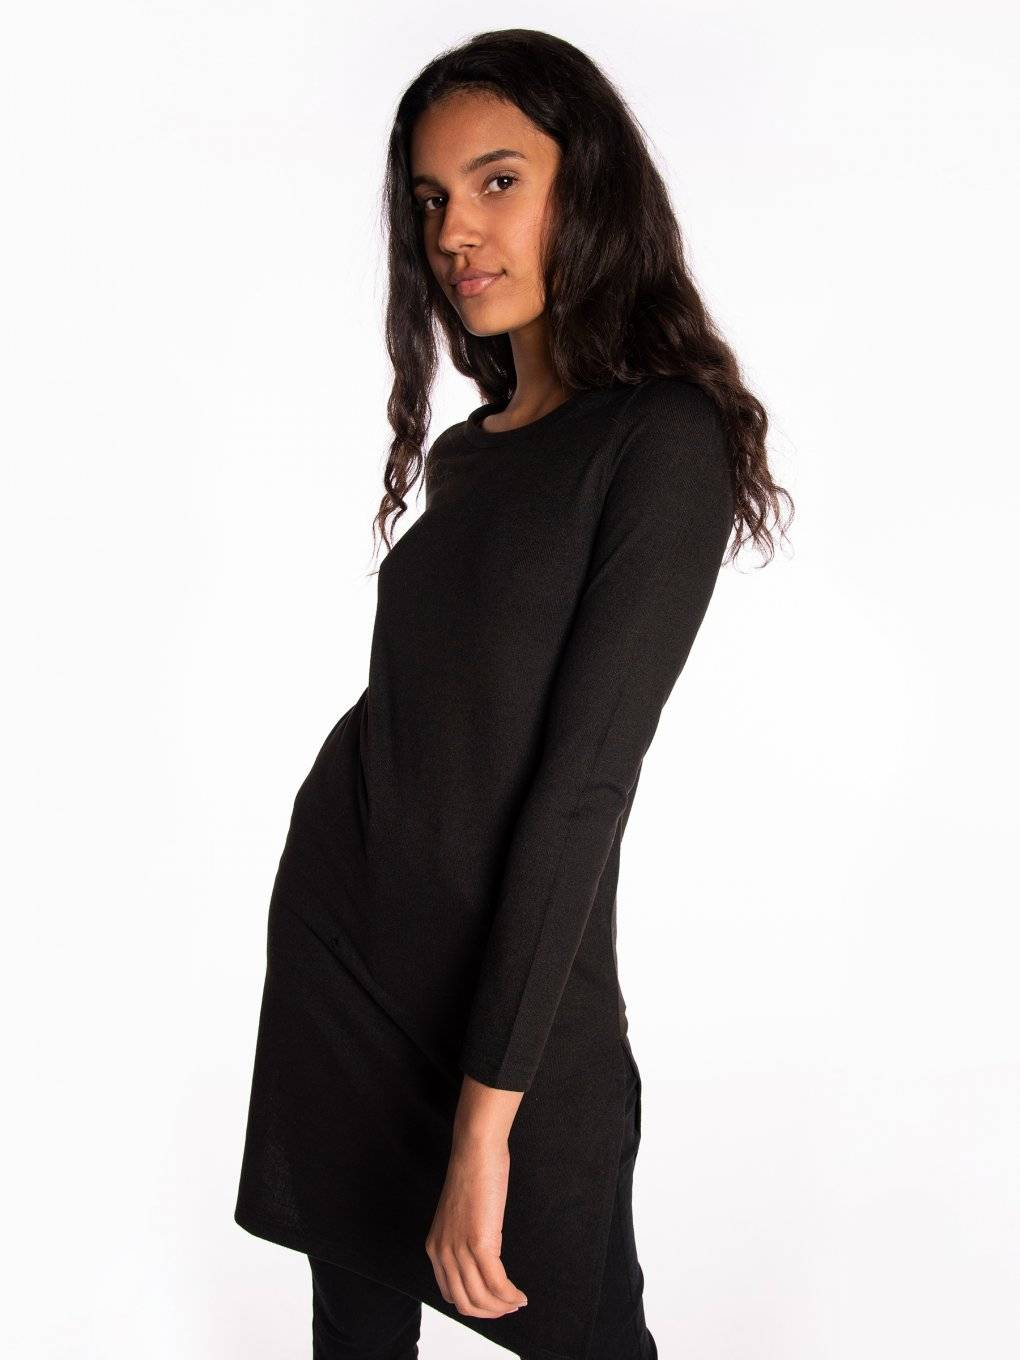 Longline top with side slits